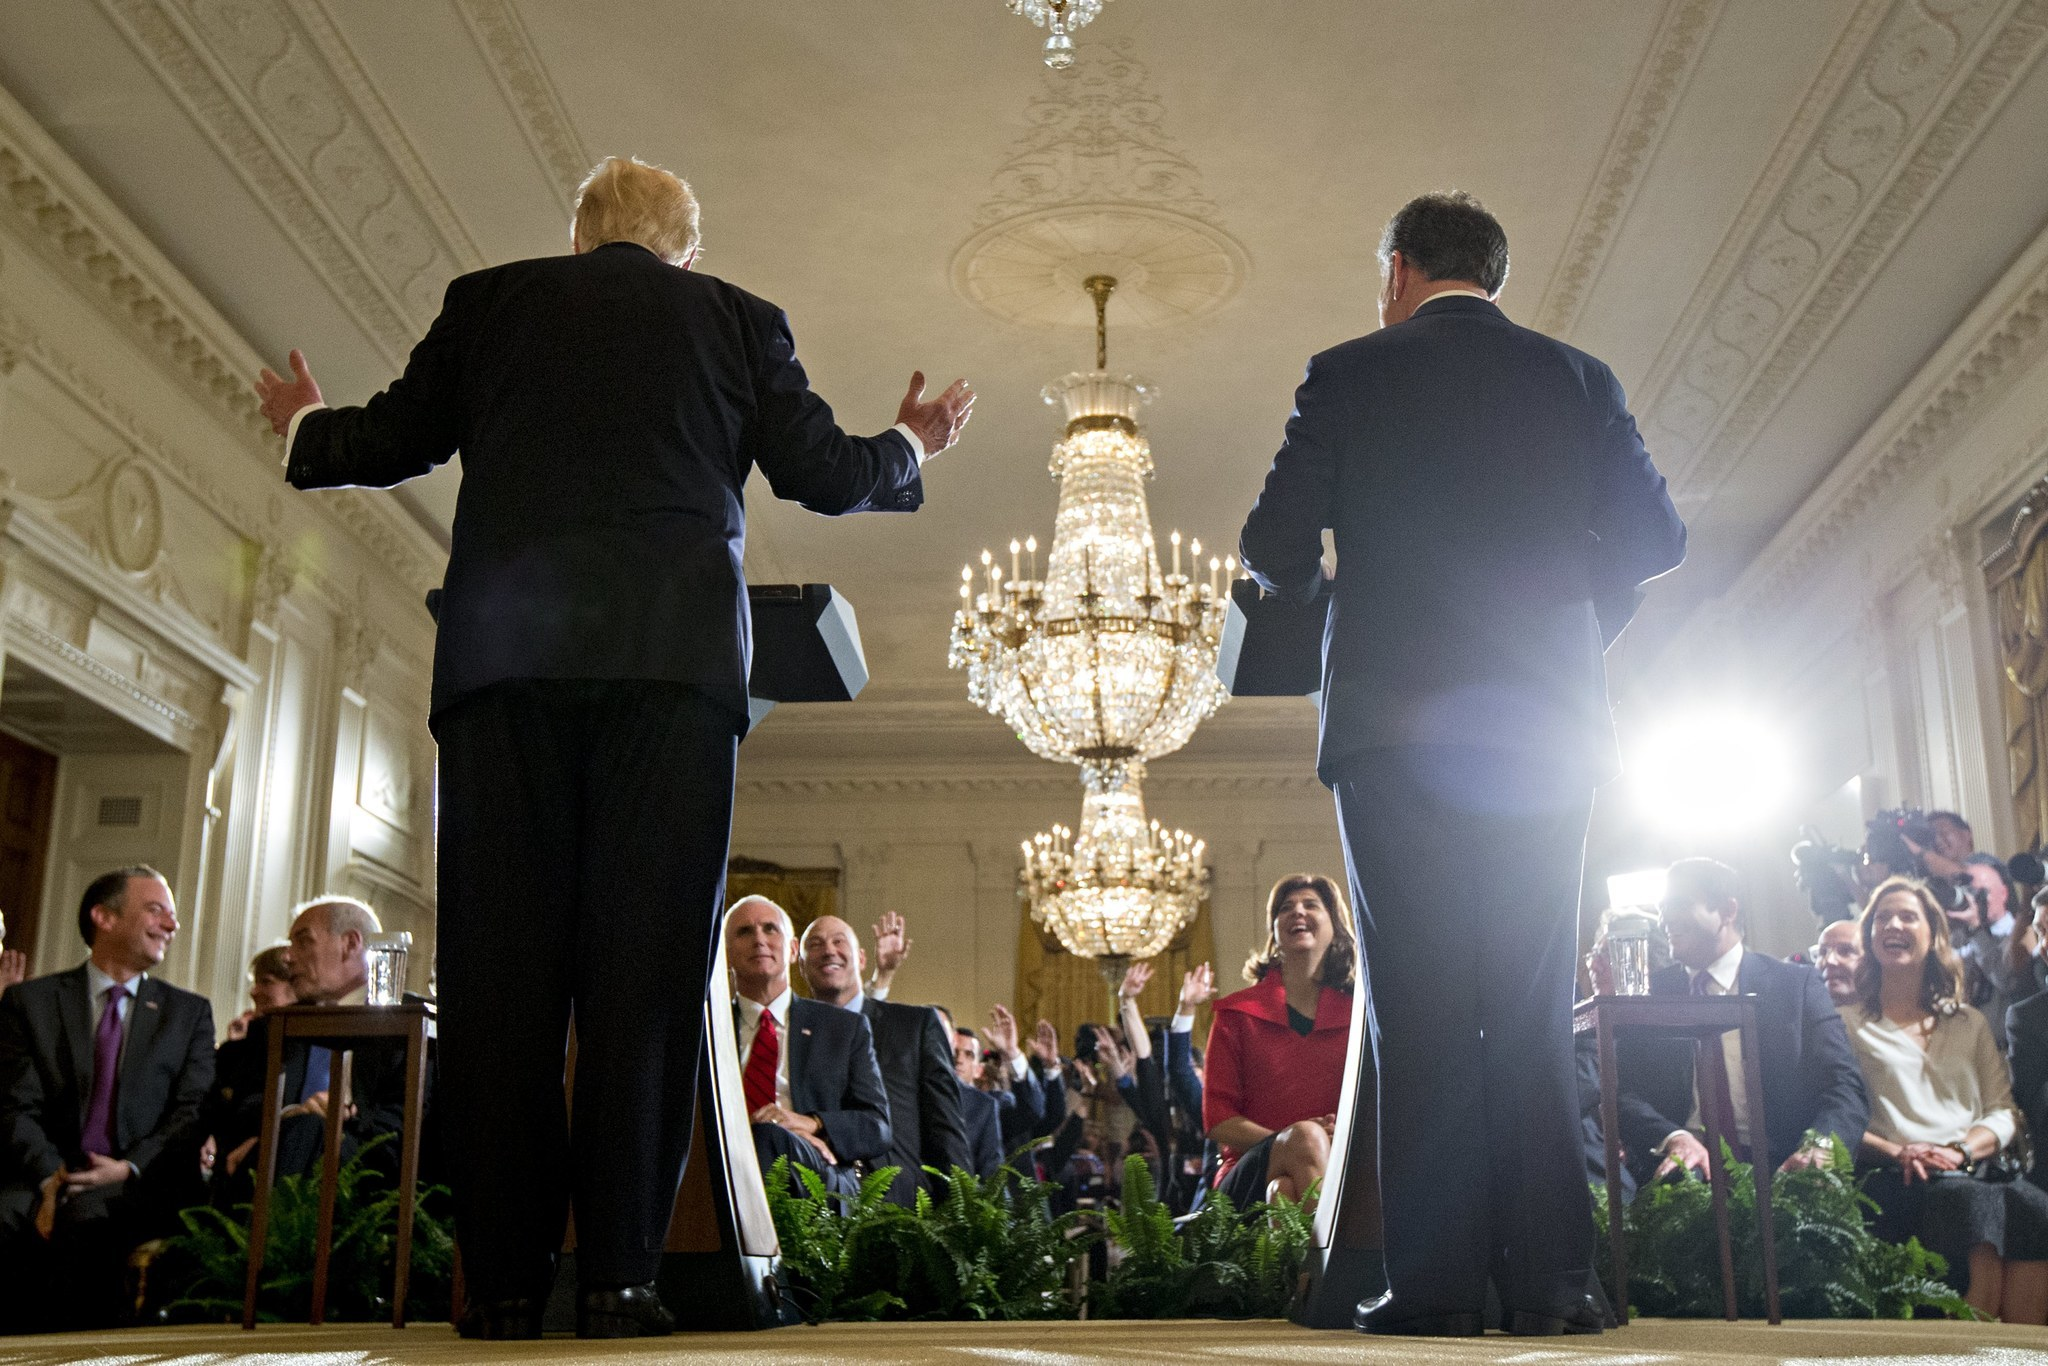 President Trump, left, speaks beside Colombian President Juan Manuel Santos during a White House news conference on Thursday, May 18, 2017. (Andrew Harrer / Pool / EPA)